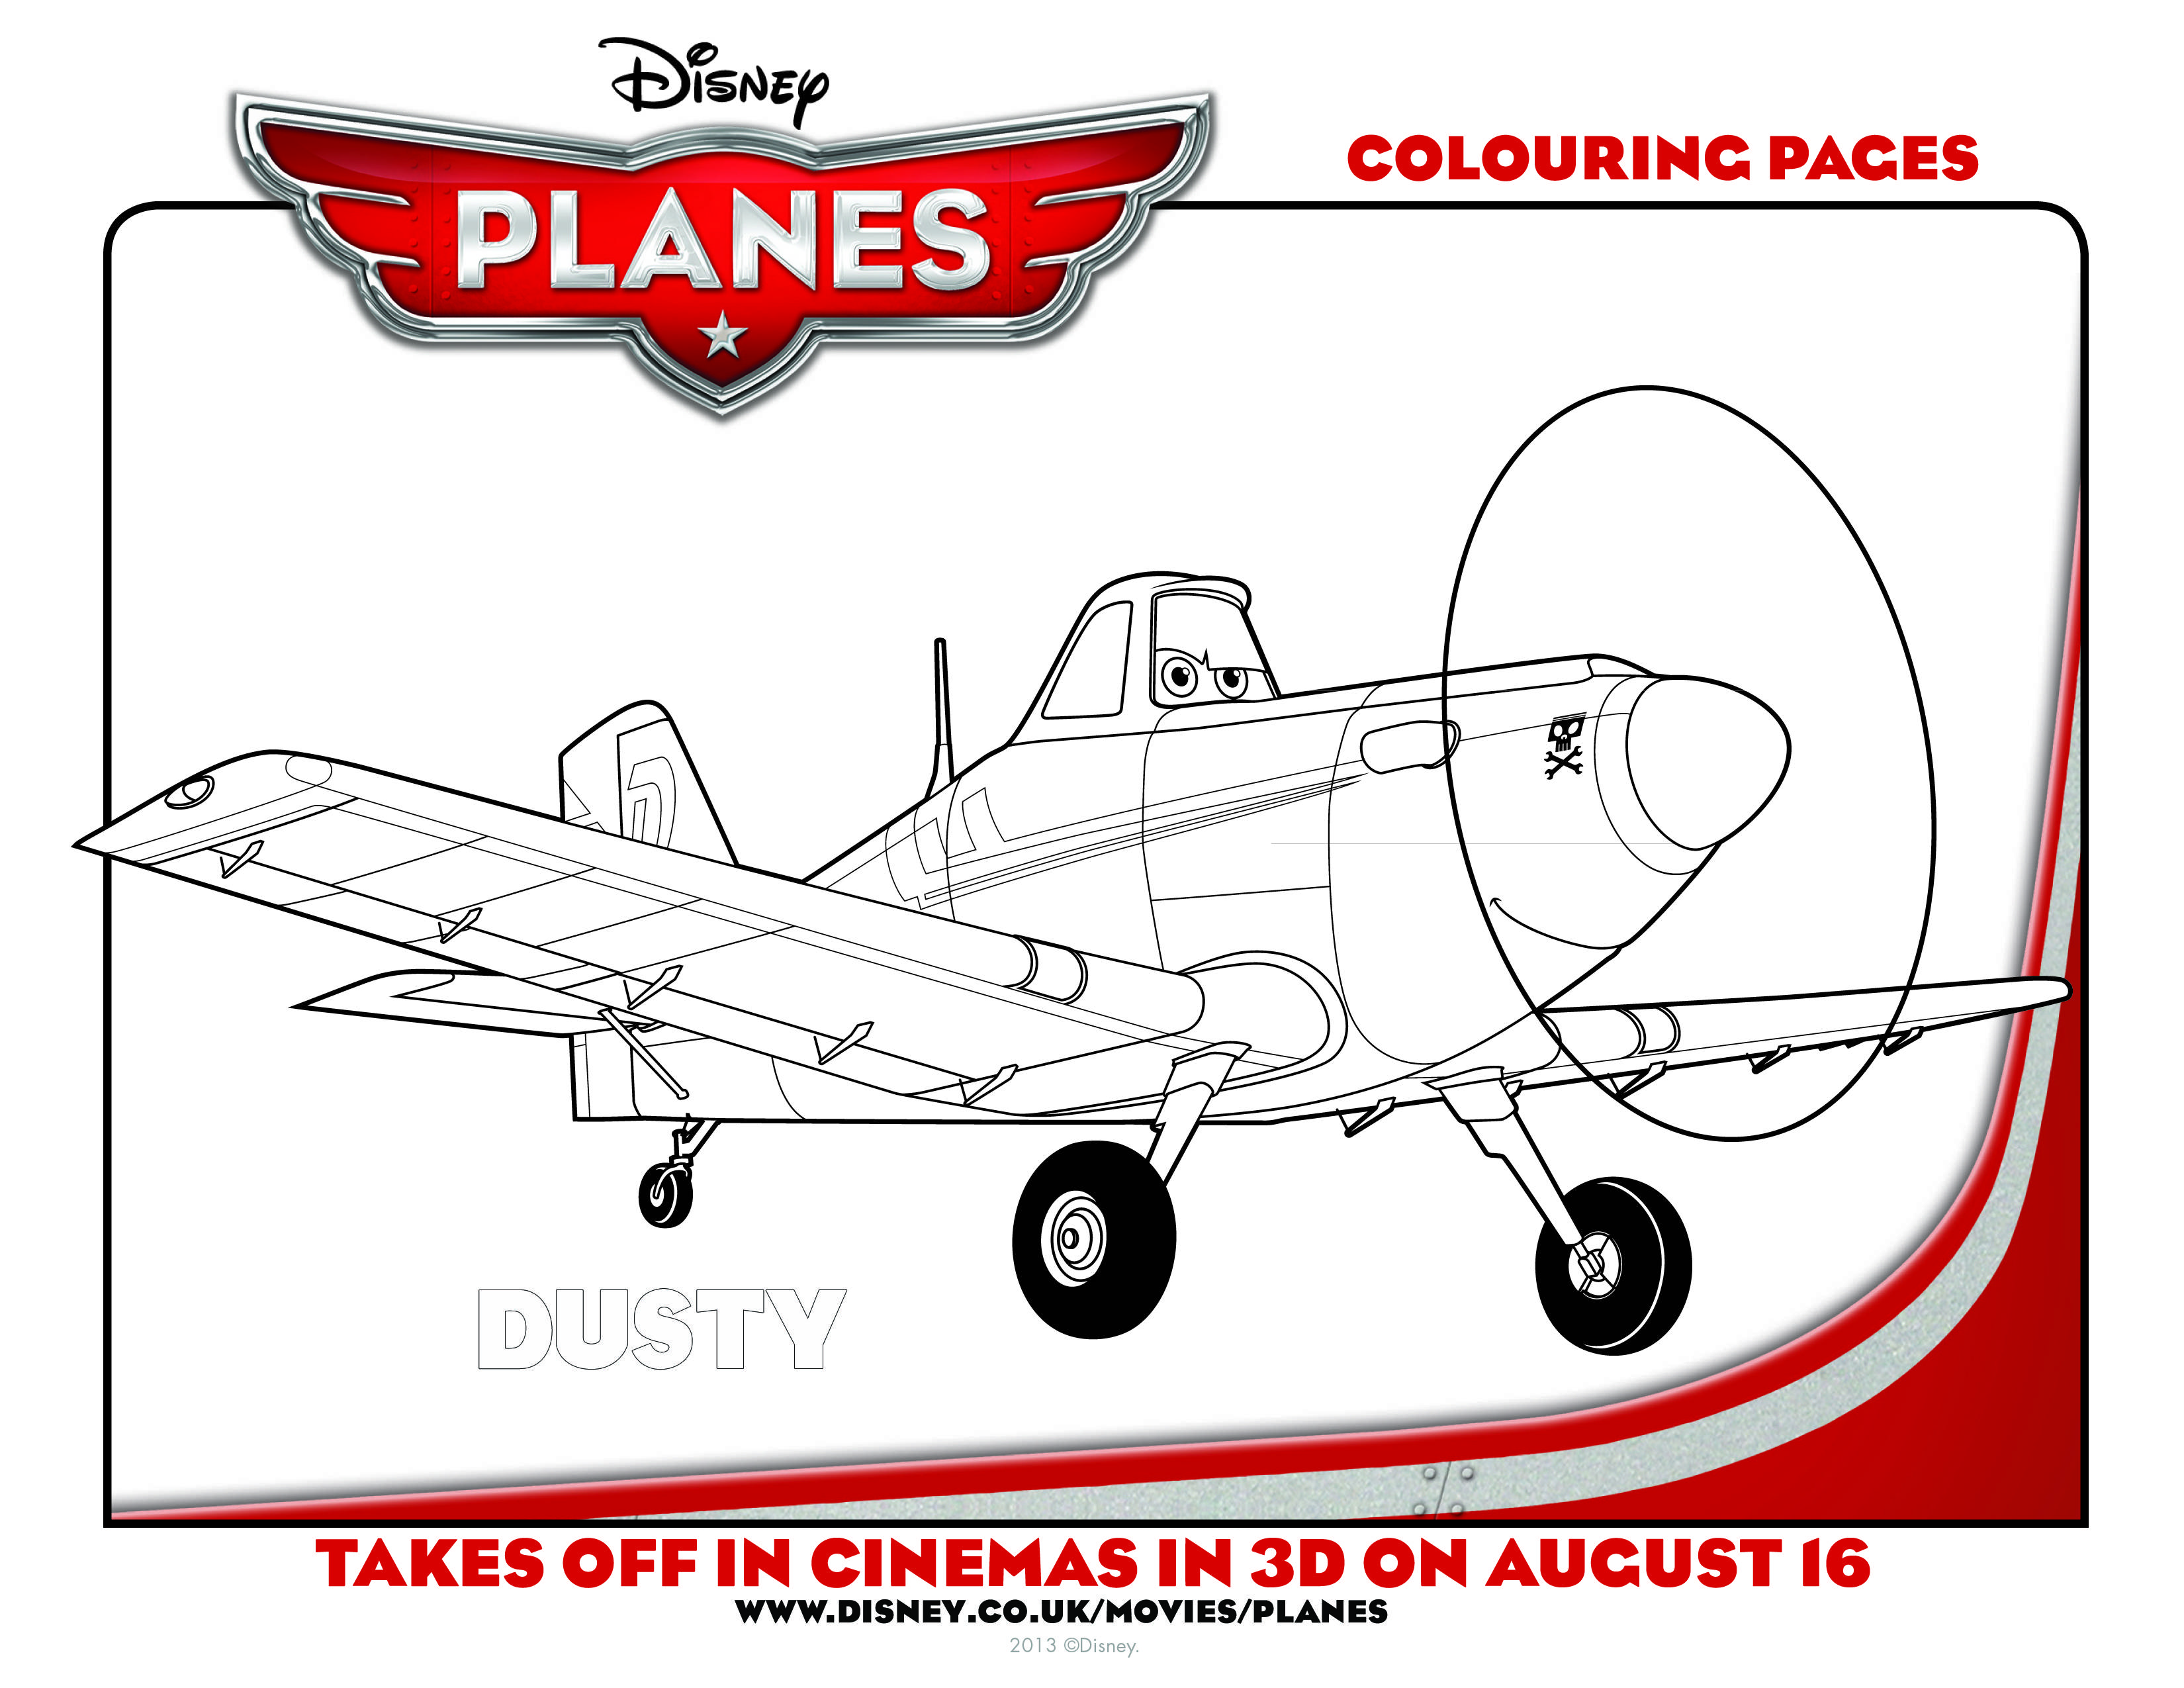 Dusty Planes Coloring Pages - Worksheet & Coloring Pages